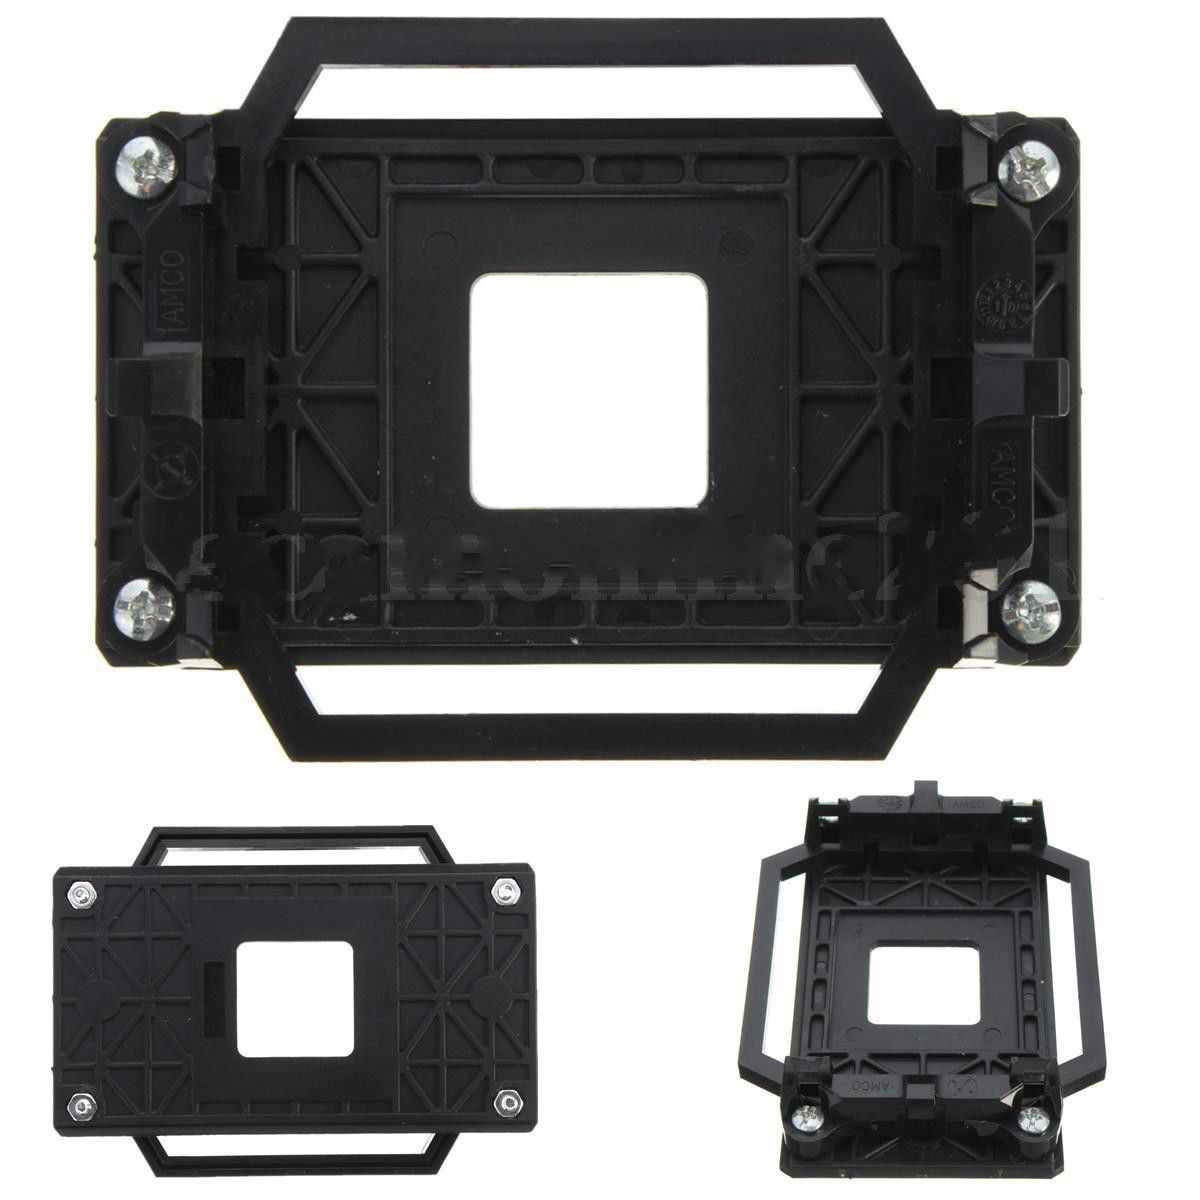 CPU Cooling Retention Base Bracket For AMD Socket AM3+ AM2+ AM2 AM3 940